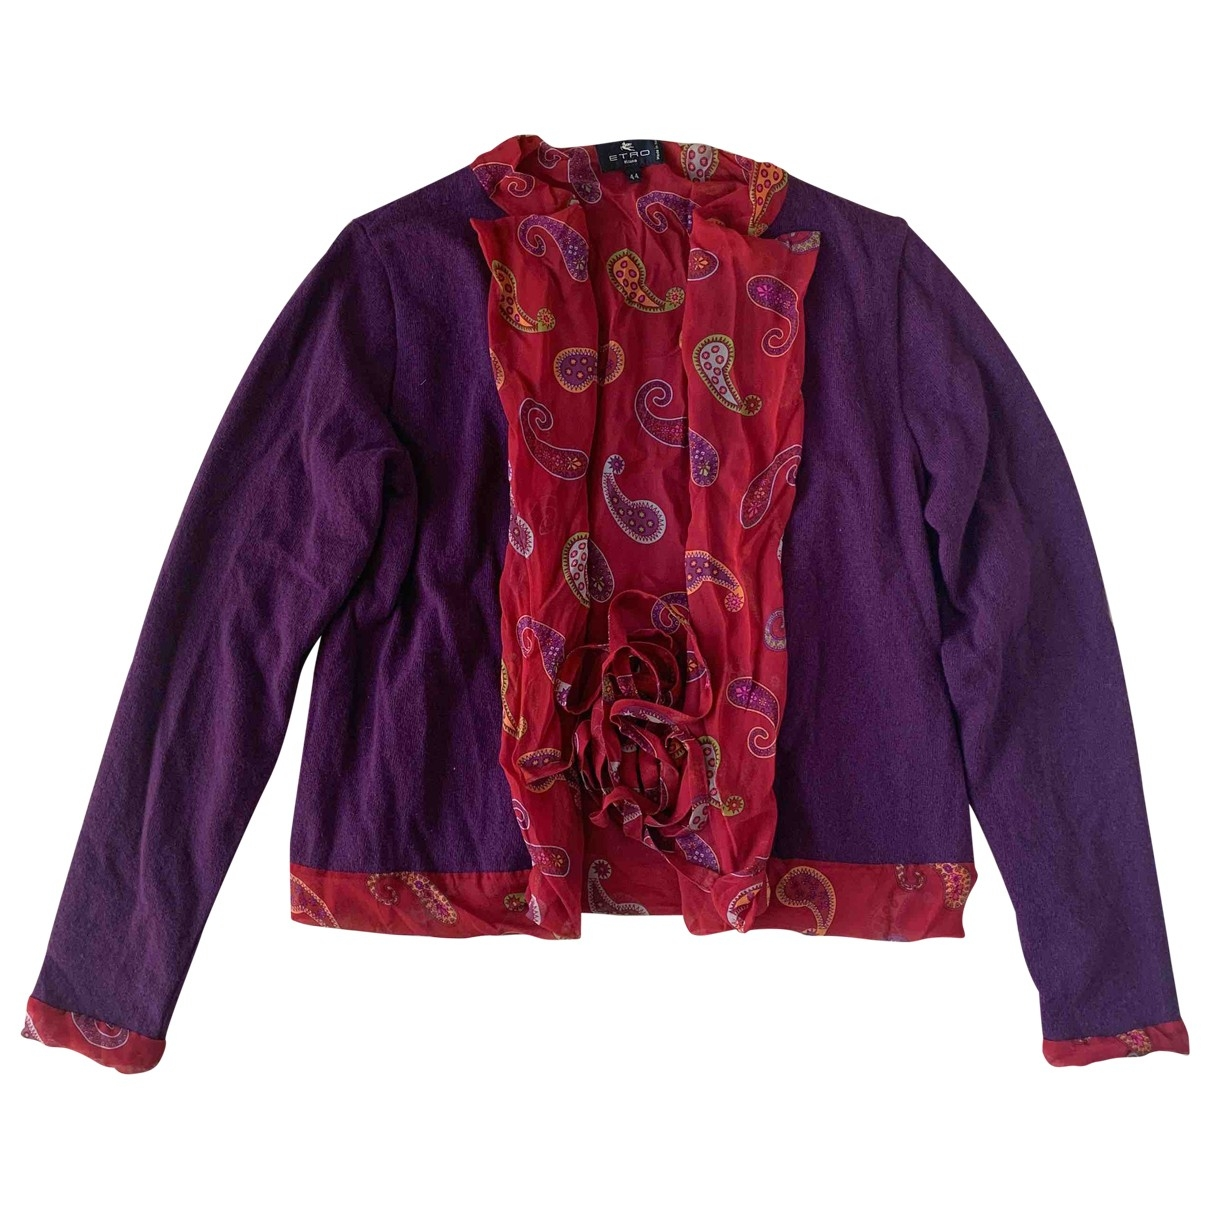 Etro \N Pullover in  Lila Wolle